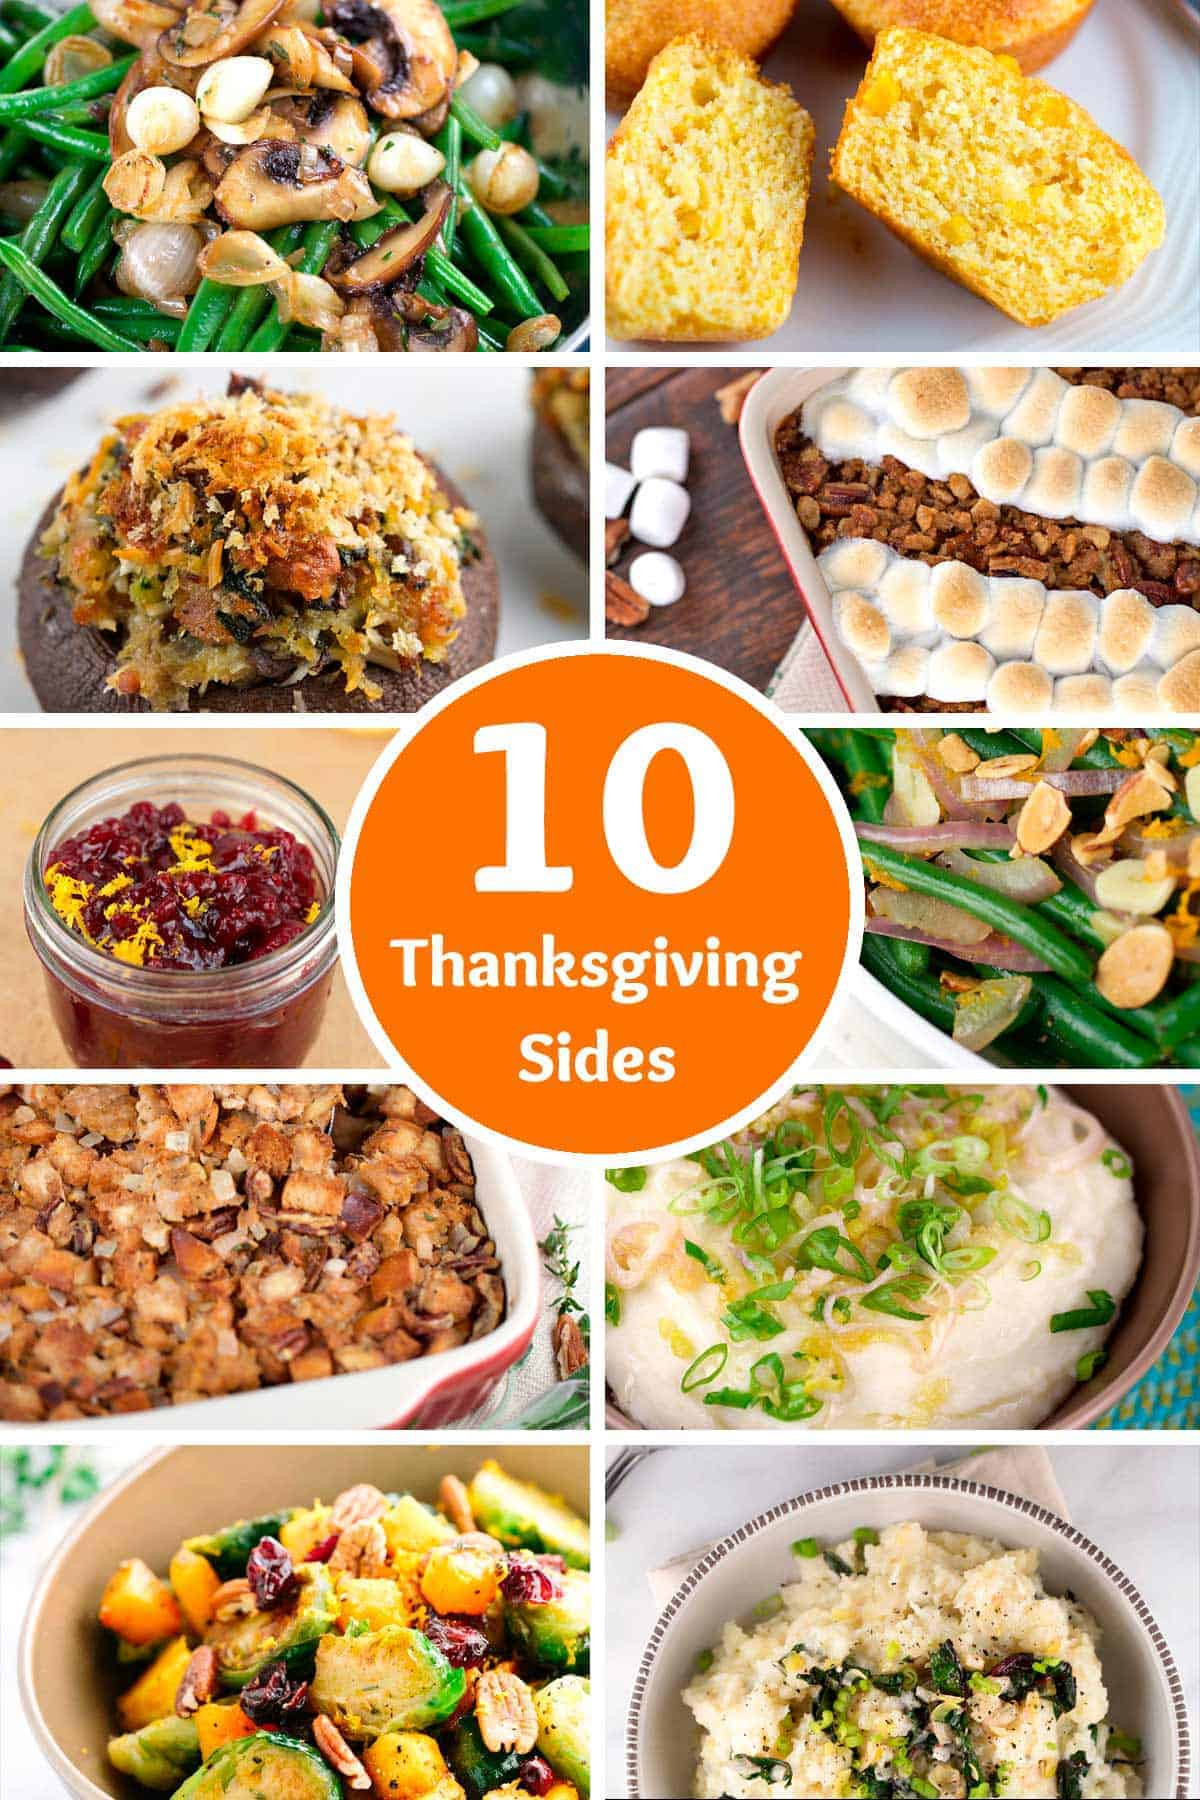 Easy Side Dishes For Thanksgiving Meal  10 Easy to Make Thanksgiving Side Dishes Jessica Gavin